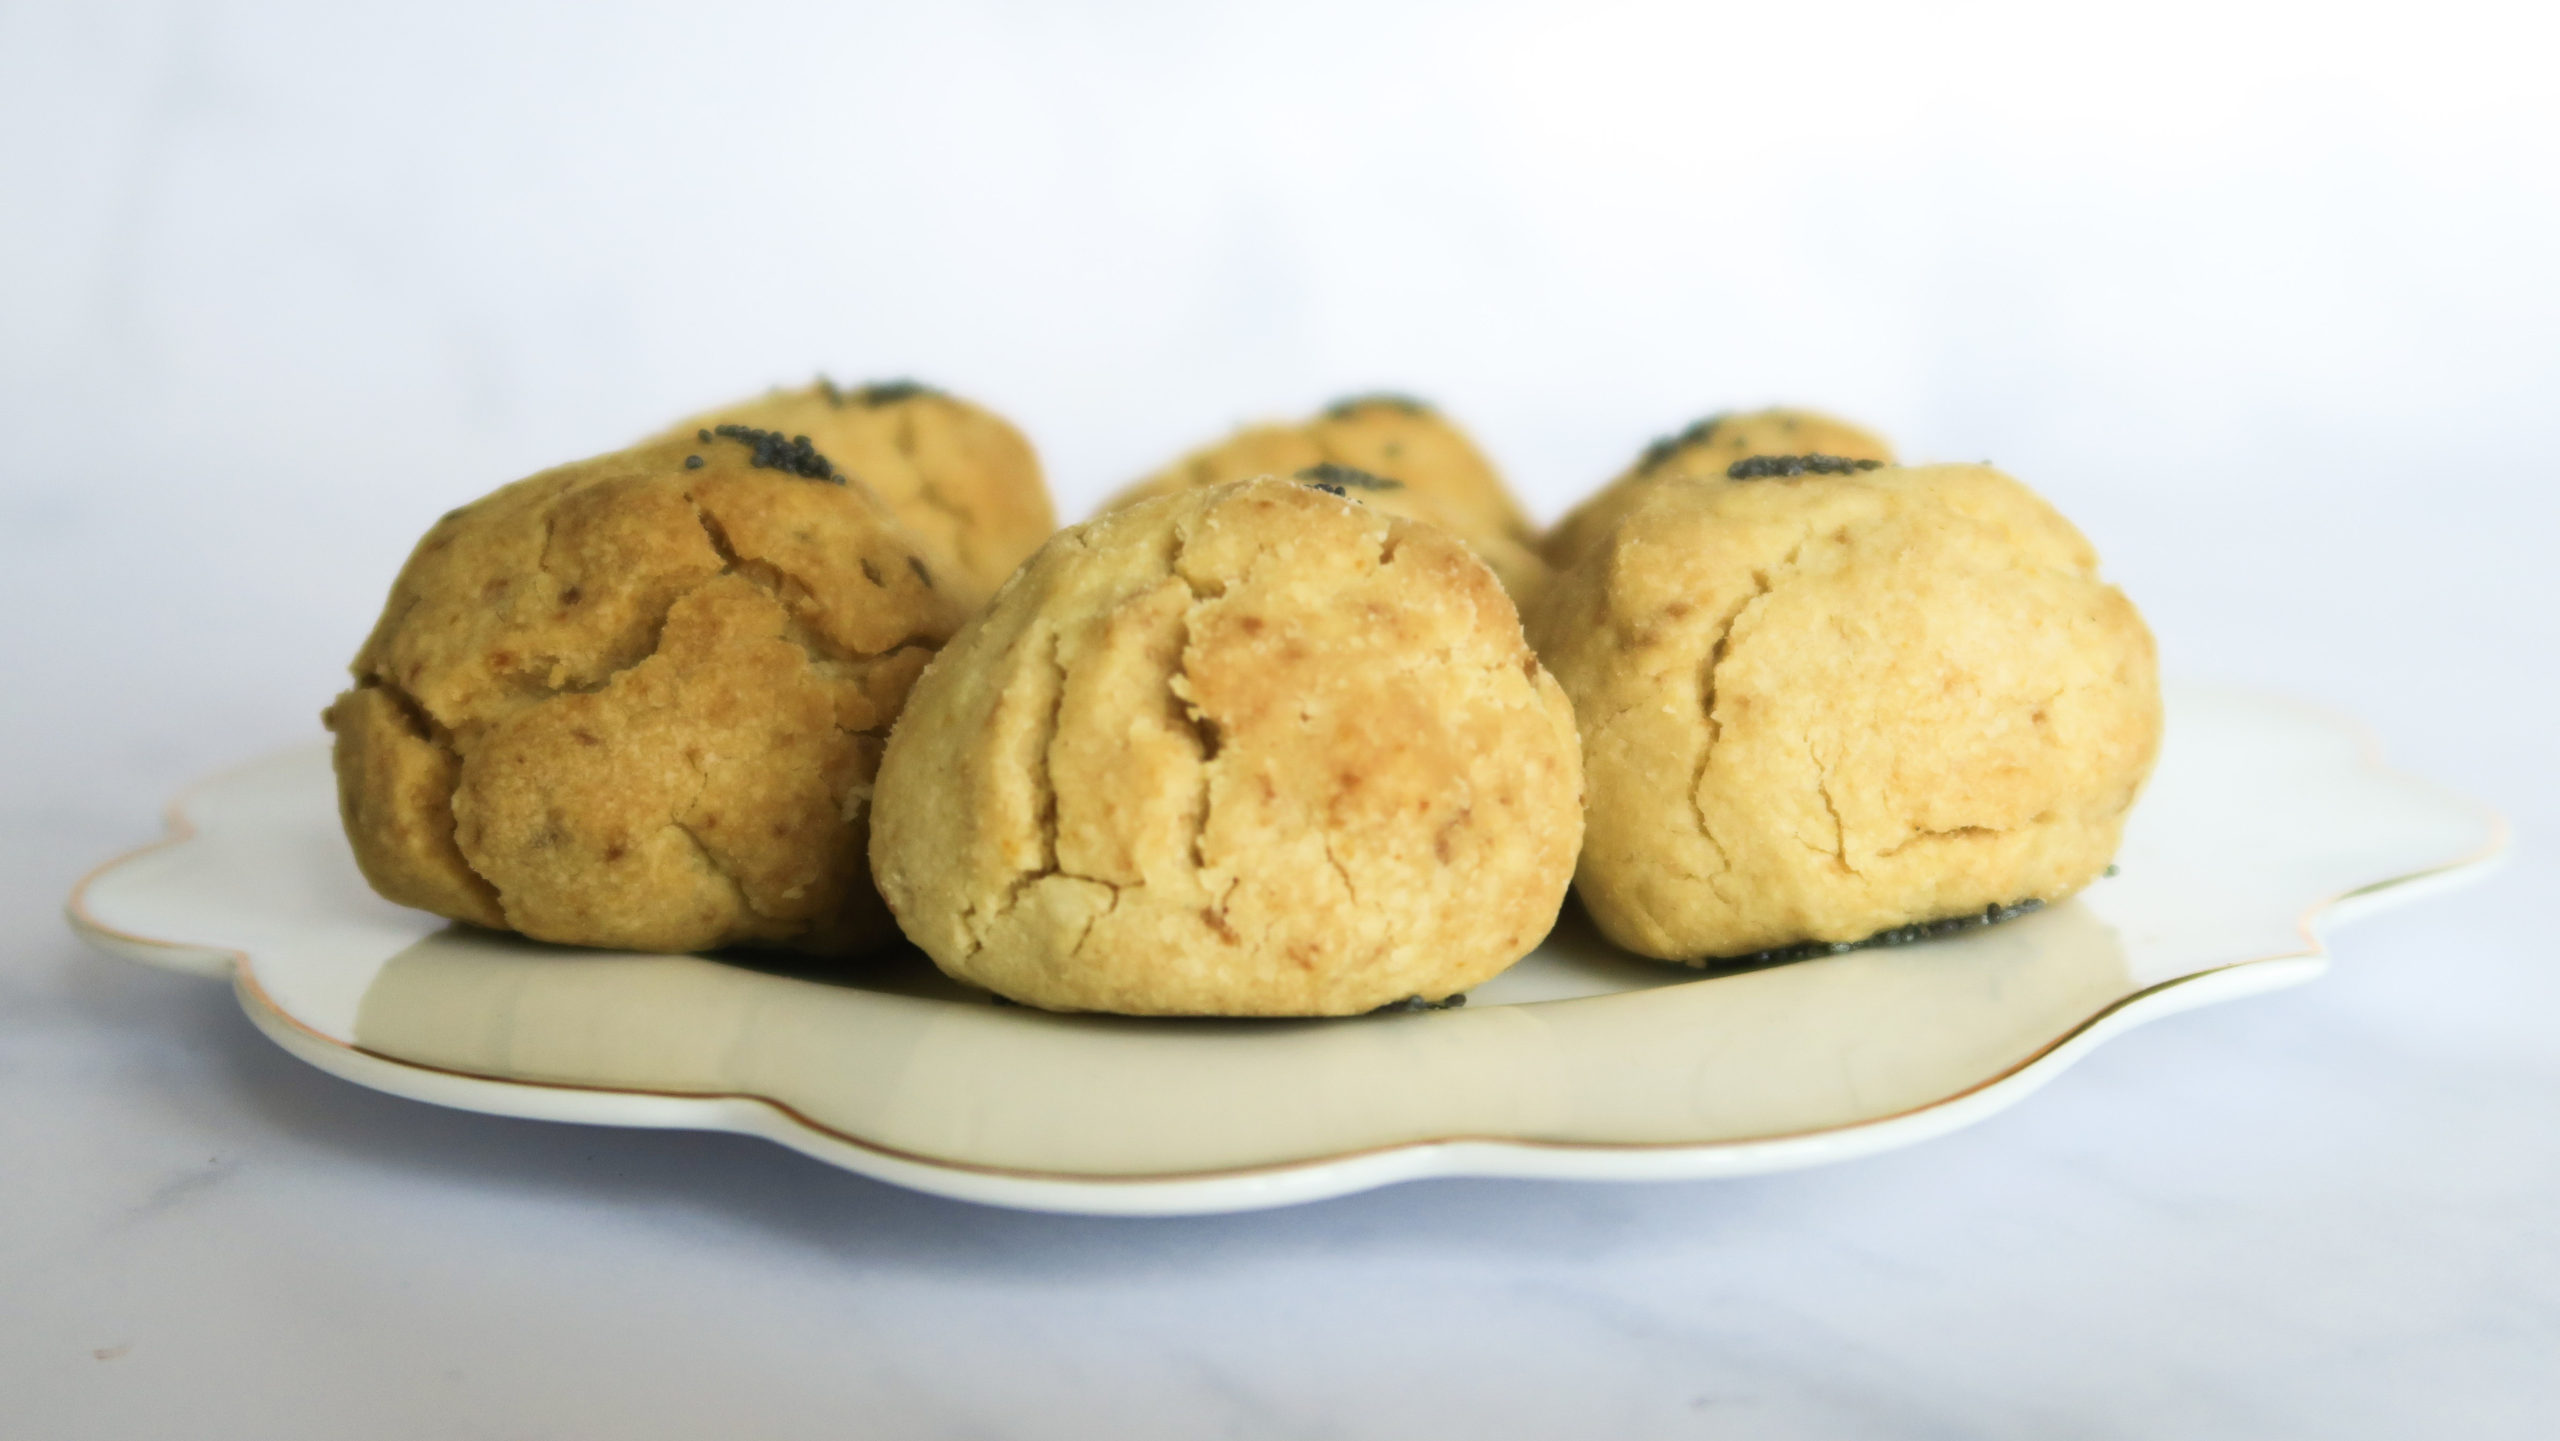 Lemon and poppy seed biscuits on a plate